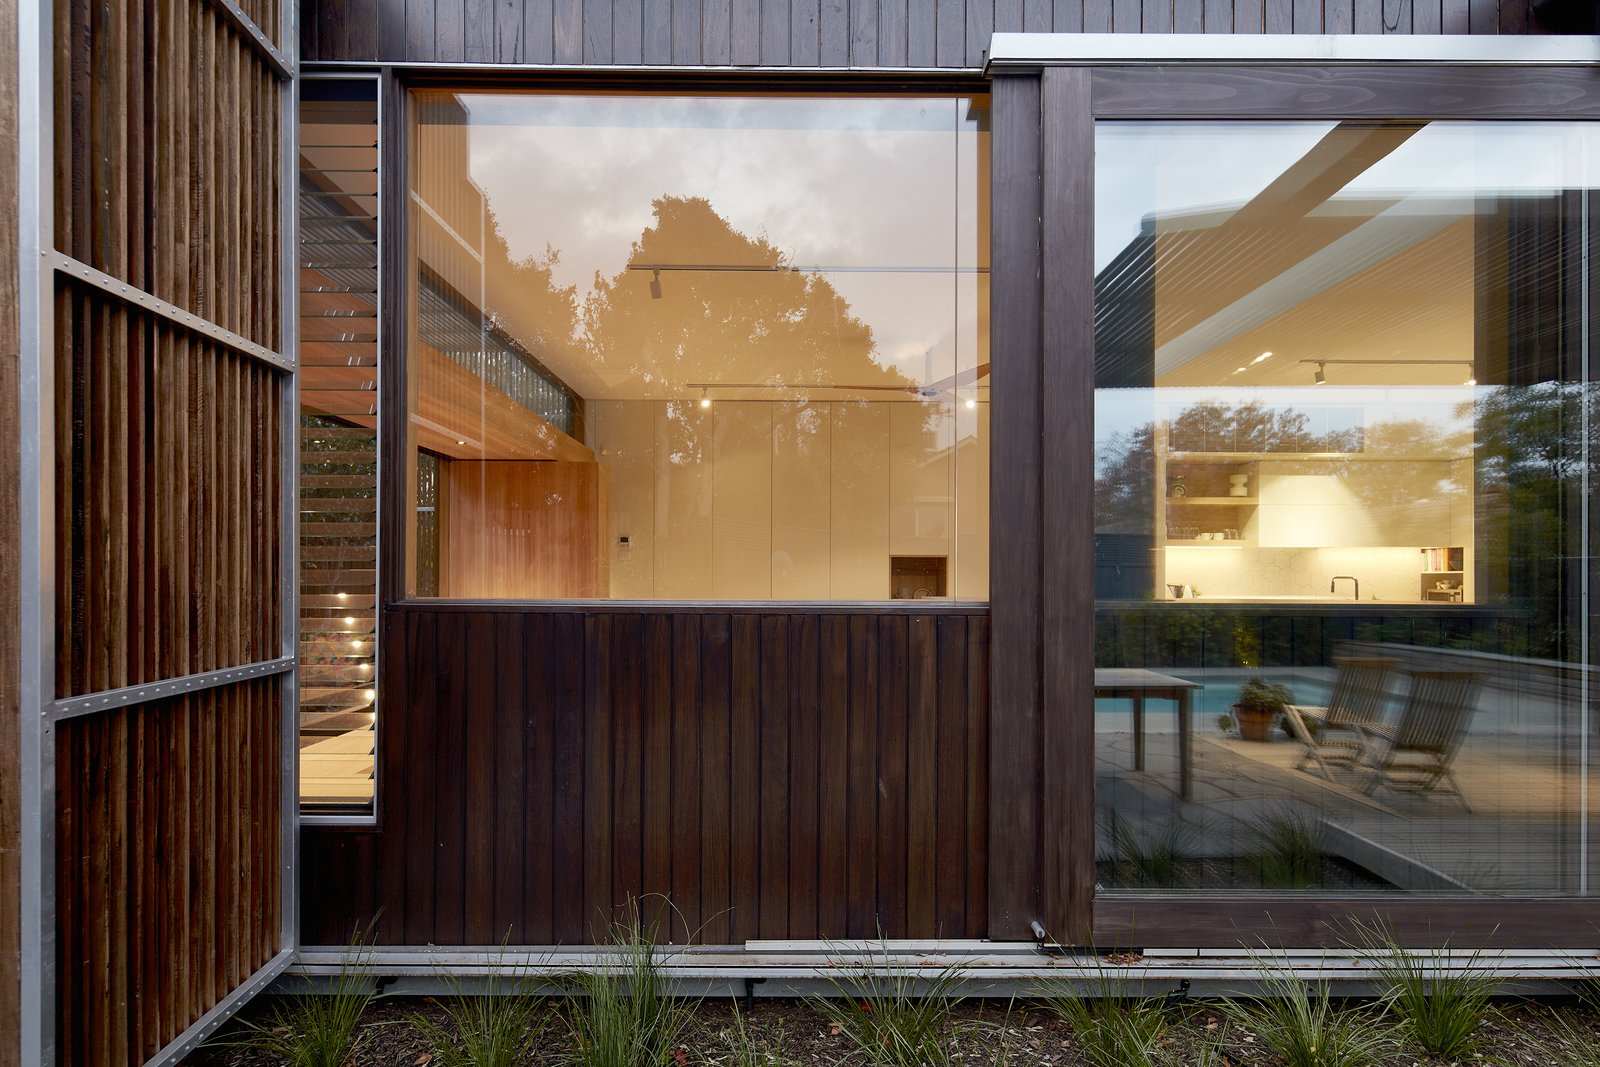 Windows, Sliding Window Type, Wood, and Picture Window Type Wilson also incorporated high levels of insulation and double glazing to make the house energy efficient.  Photo 16 of 17 in Wooden Screens Shade This Sustainable Melbourne Residence